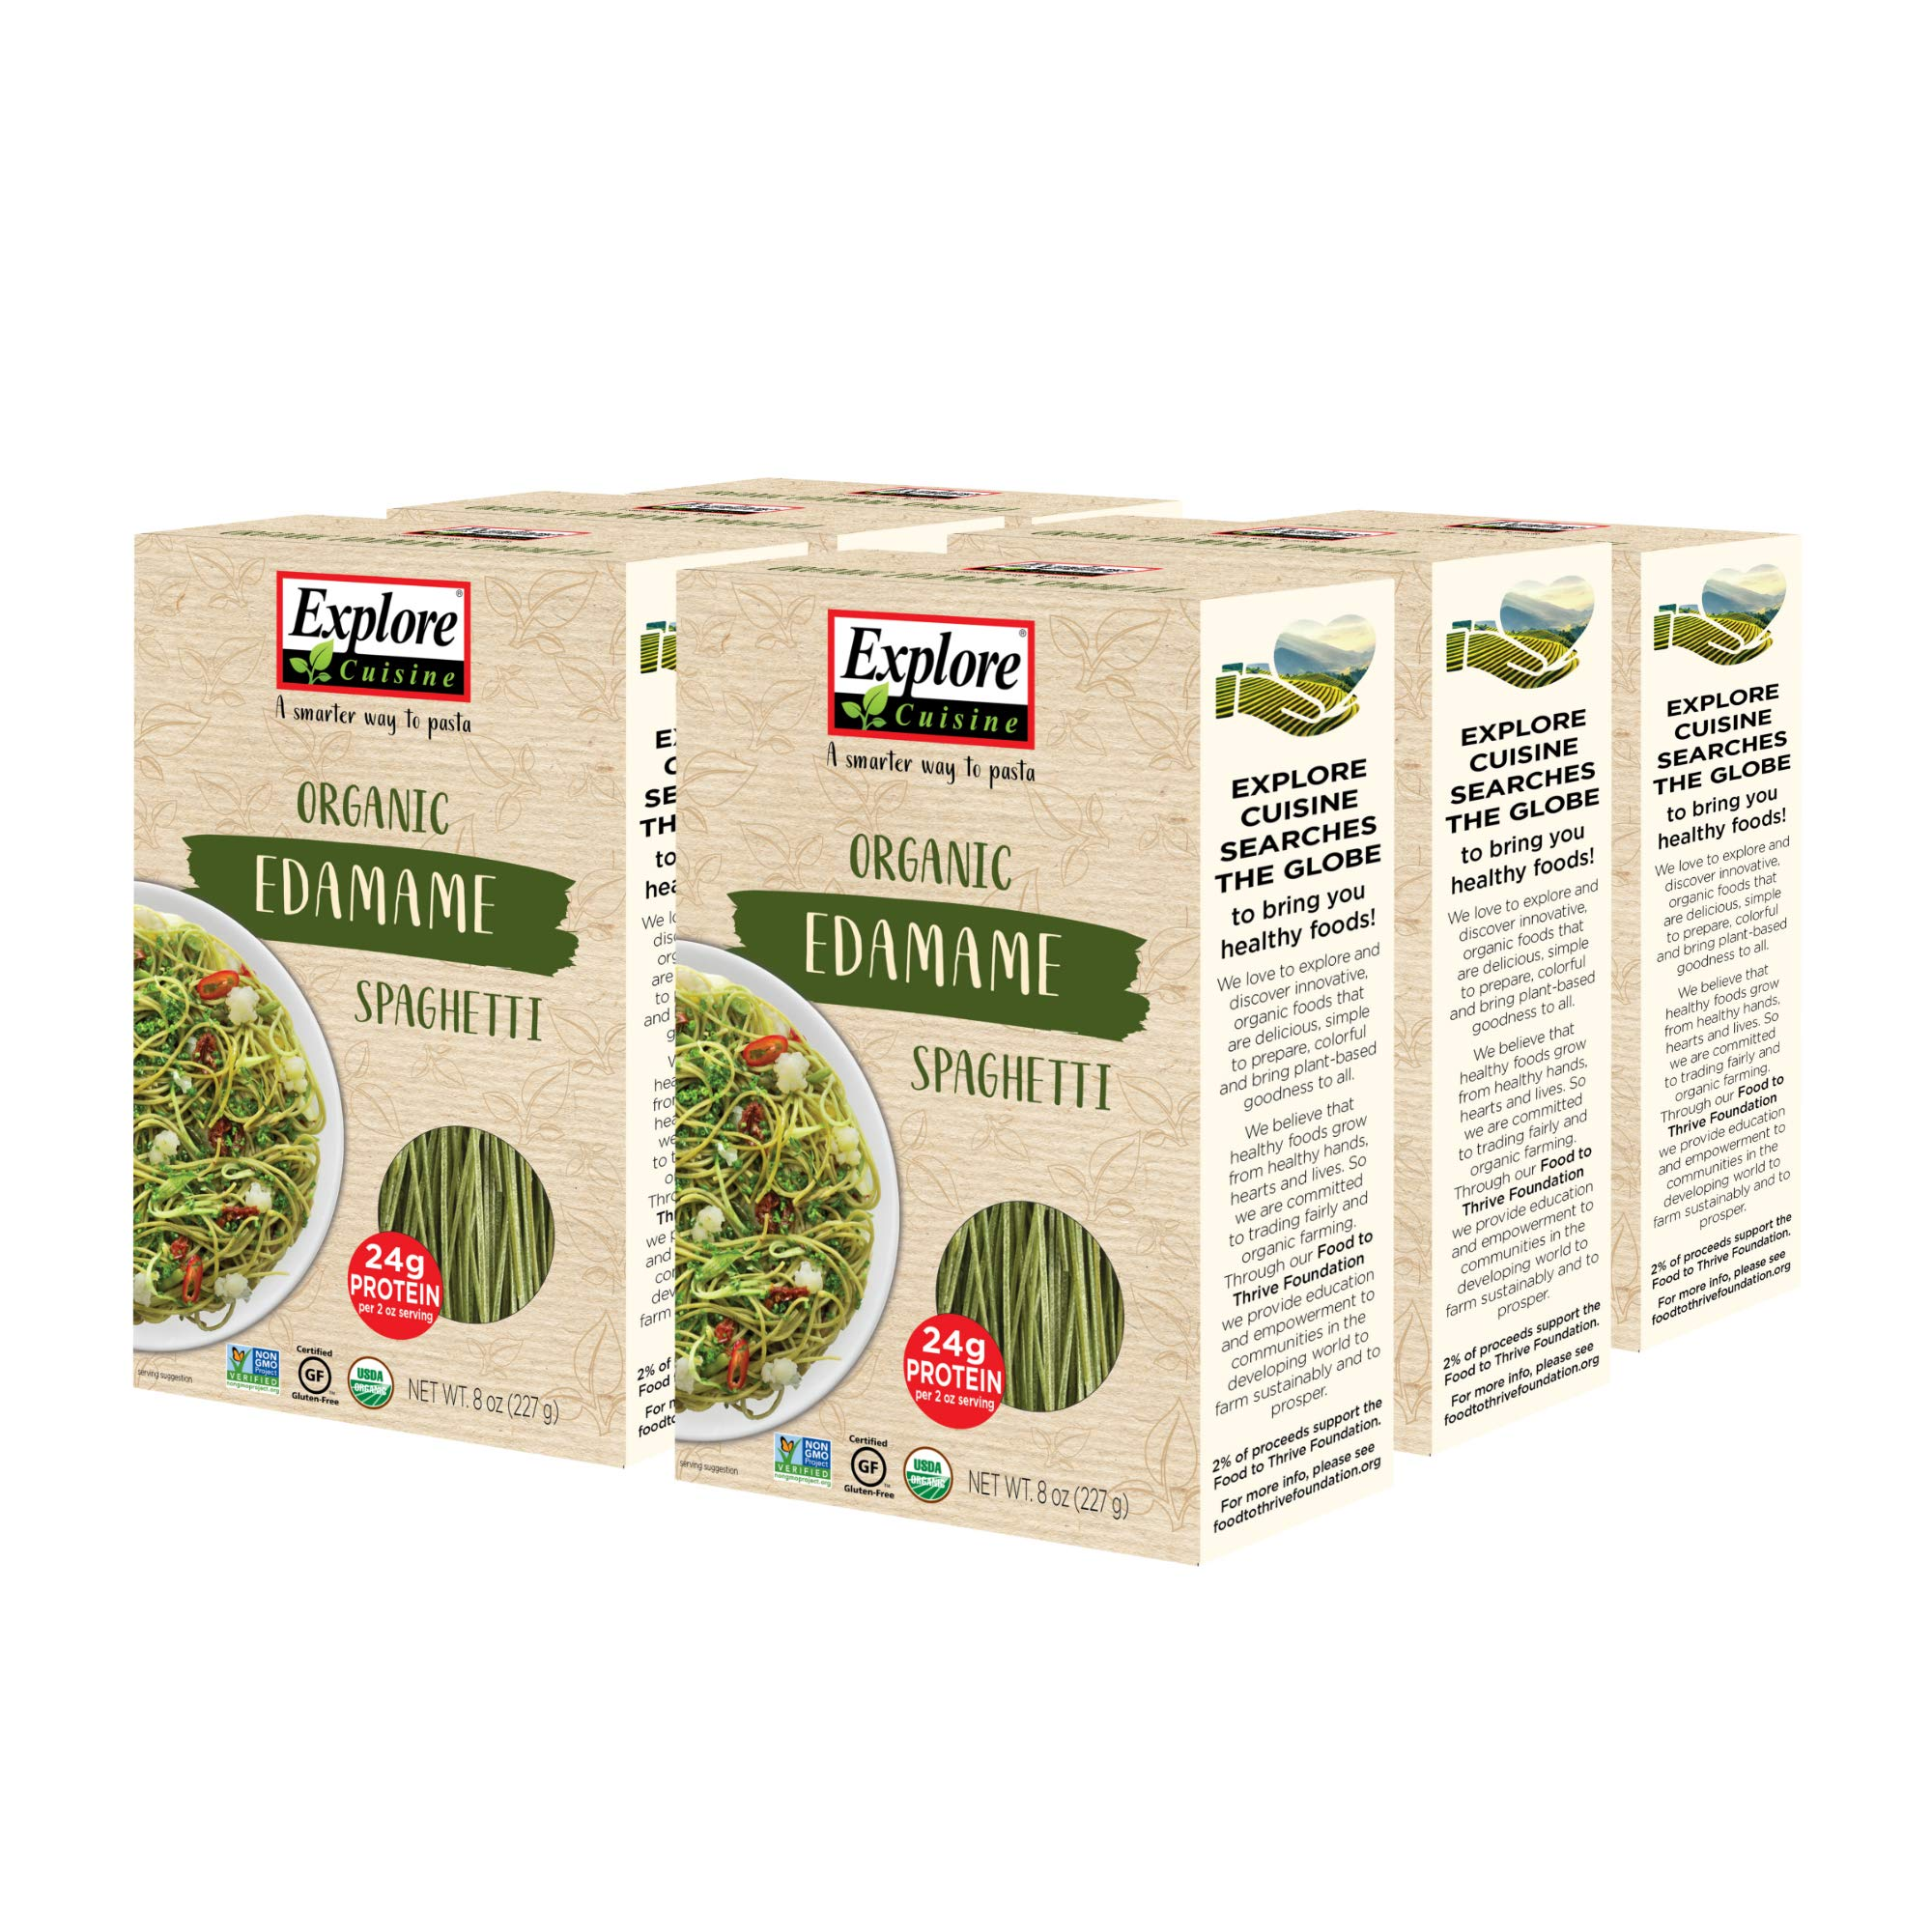 Explore Cuisine Organic Edamame Spaghetti (6 Pack) - 8 oz - Easy to Make Gluten-Free Pasta - High in Plant-Based Protein - USDA Certified Organic, Non-GMO, Vegan, Kosher - 24 Total Servings